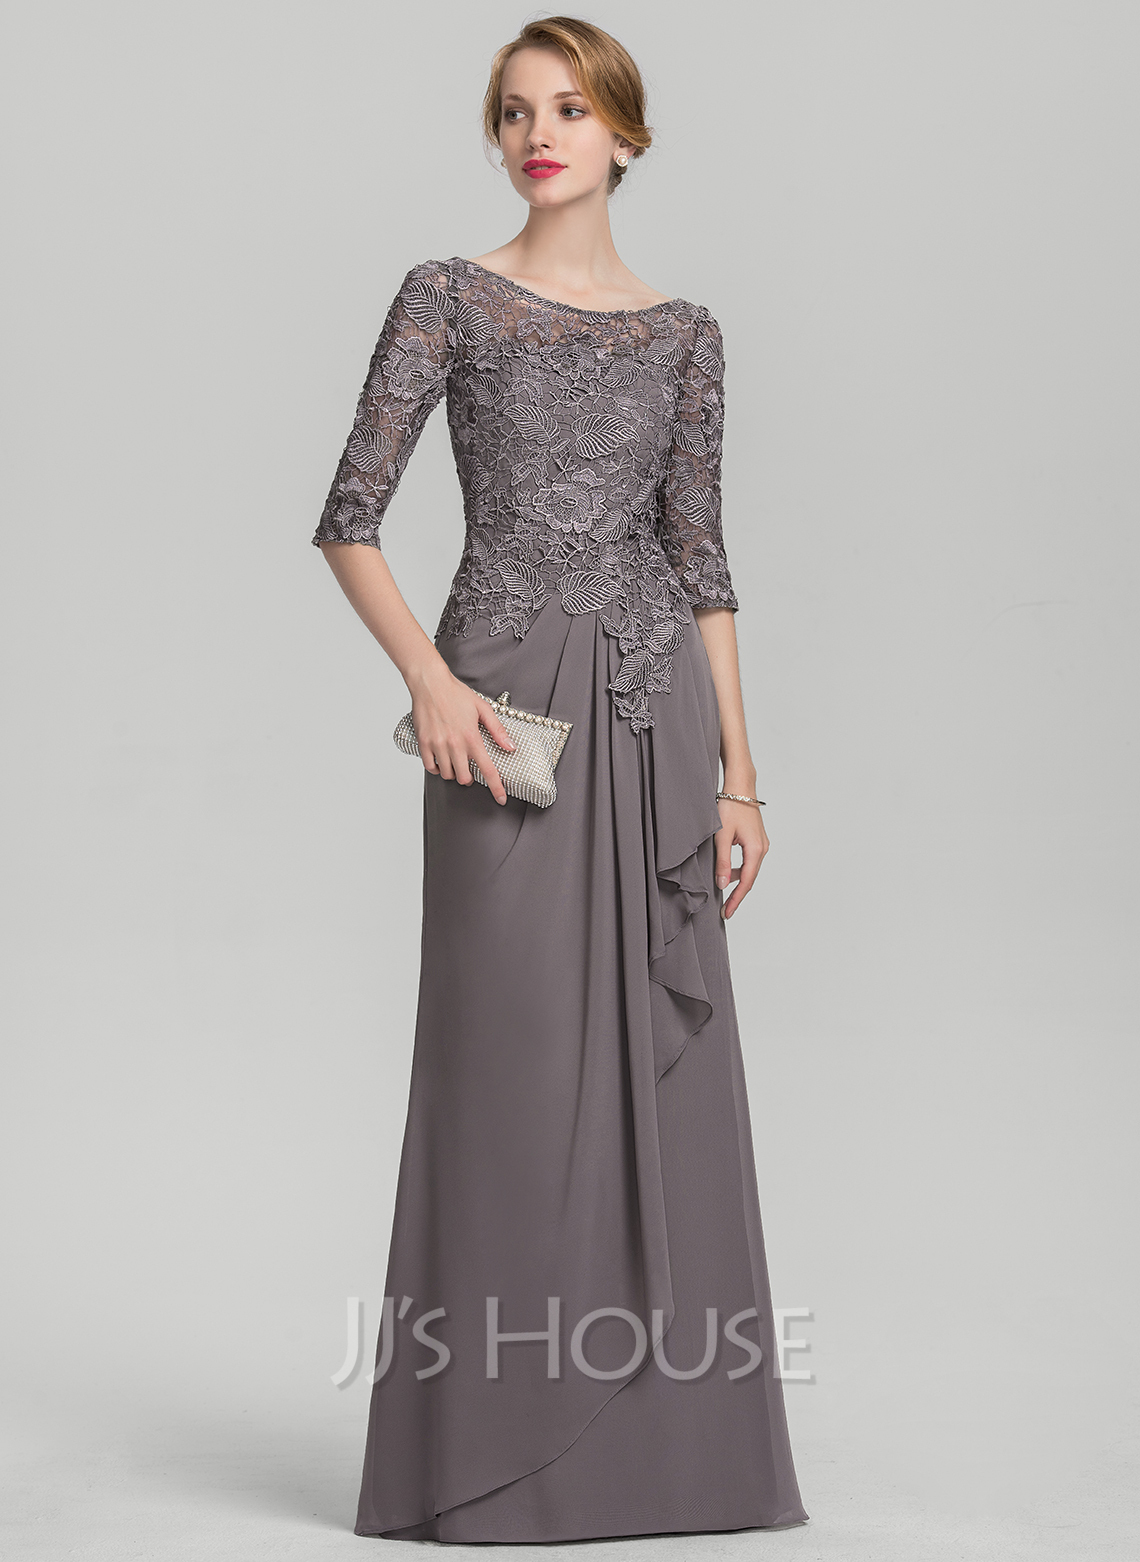 a89f9ccf6ad6 A-Line Princess Scoop Neck Floor-Length Chiffon Lace Mother of the Bride